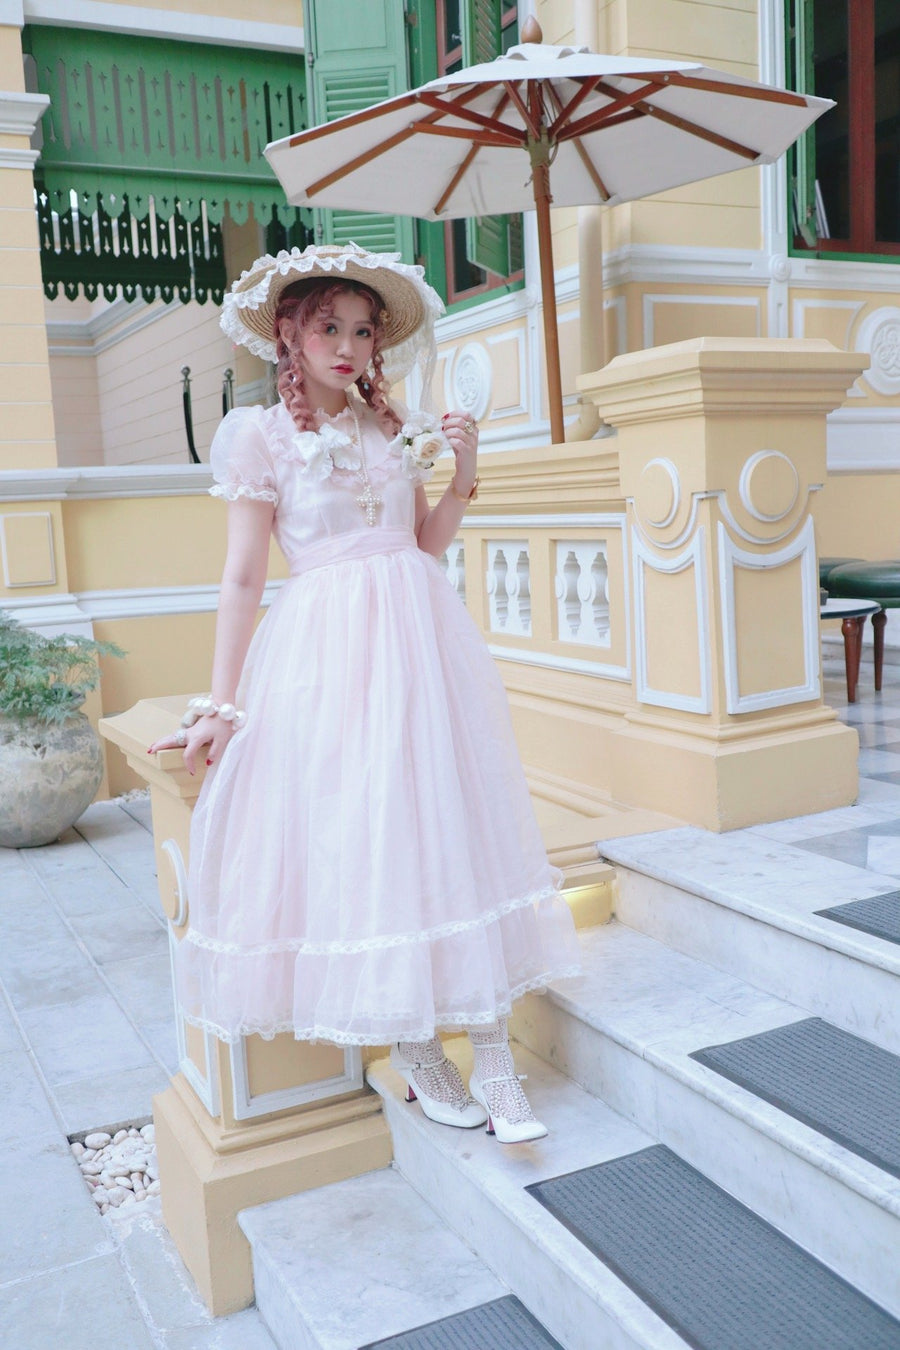 Back to stock! [Premium Selected] Vintage style Pink Polka Dots Organza Gown 'Long Vacation' - Peiliee Shop